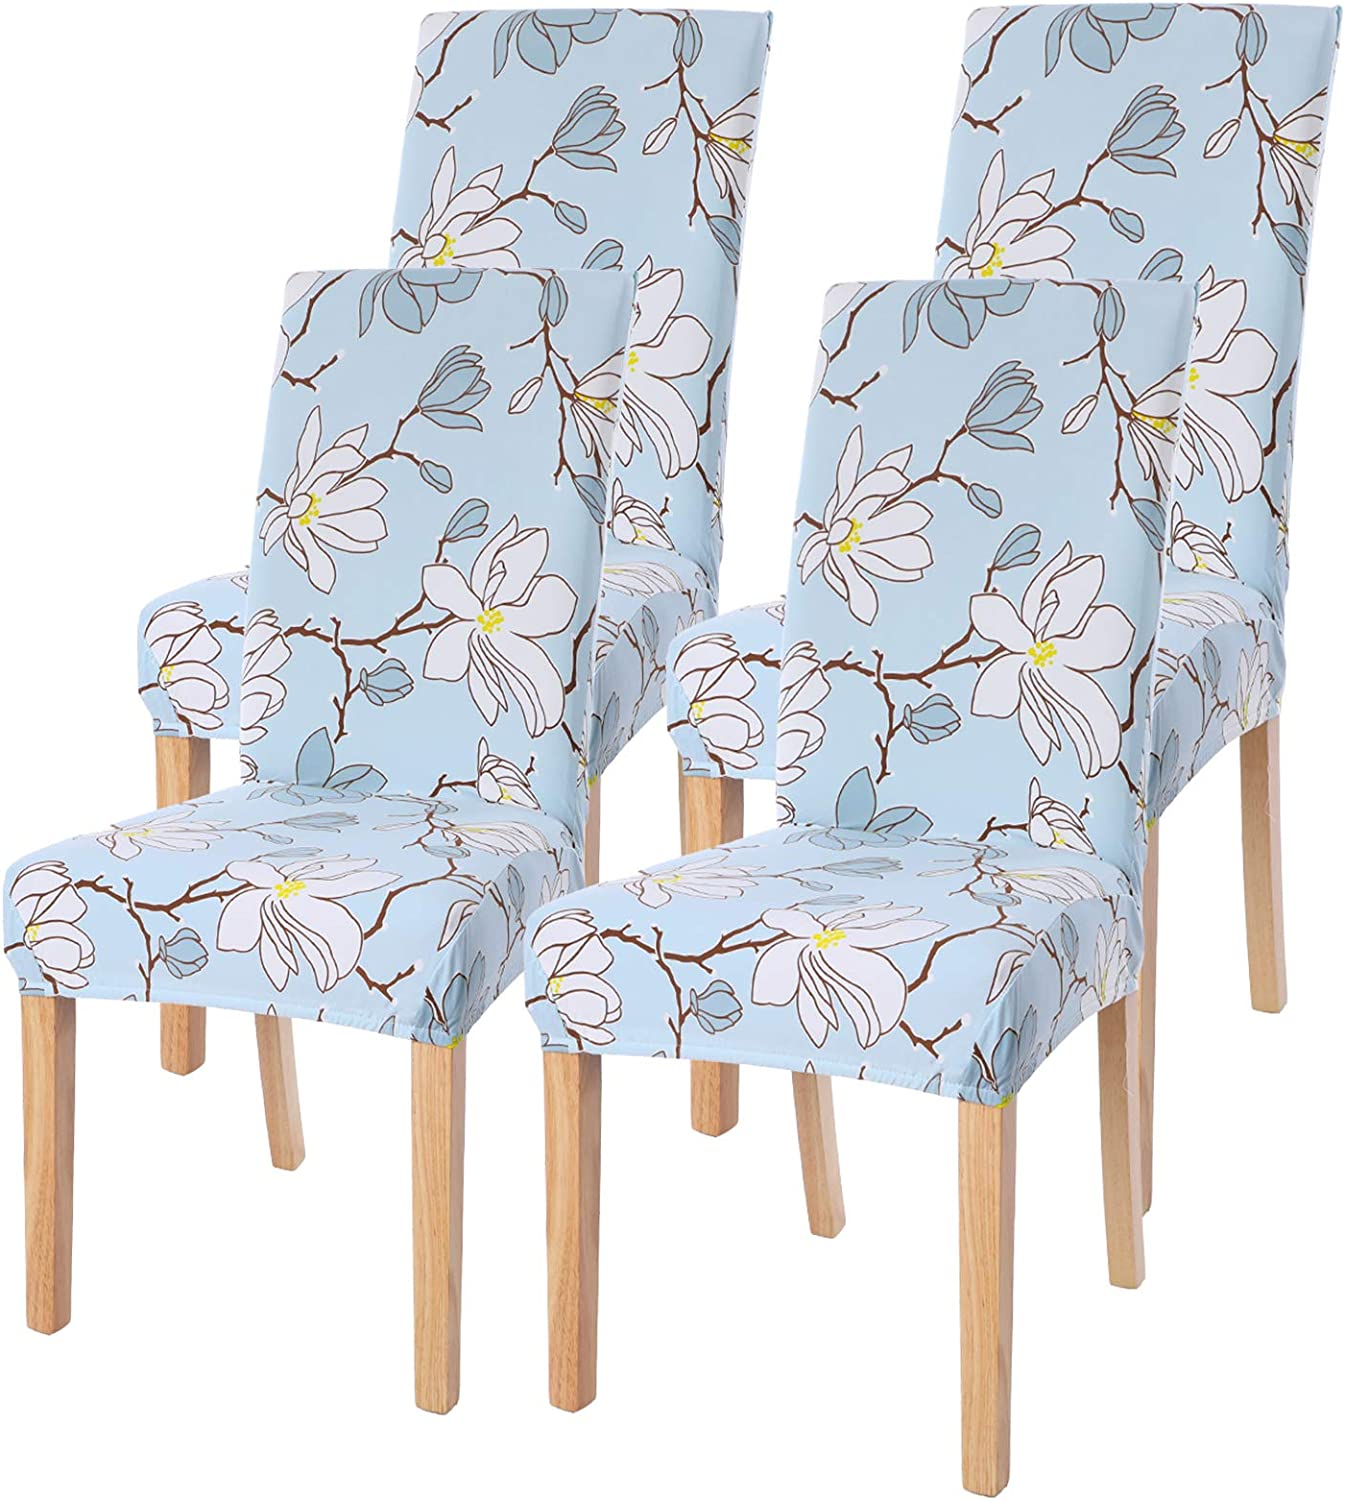 Dining Room Chair Covers Slipcovers Set of 4, SearchI Spandex Fabric Fit Stretch Removable Washable Short Parsons Kitchen Flower Chair Covers Protector for Dining Room (Light Blue, 4 per Set)